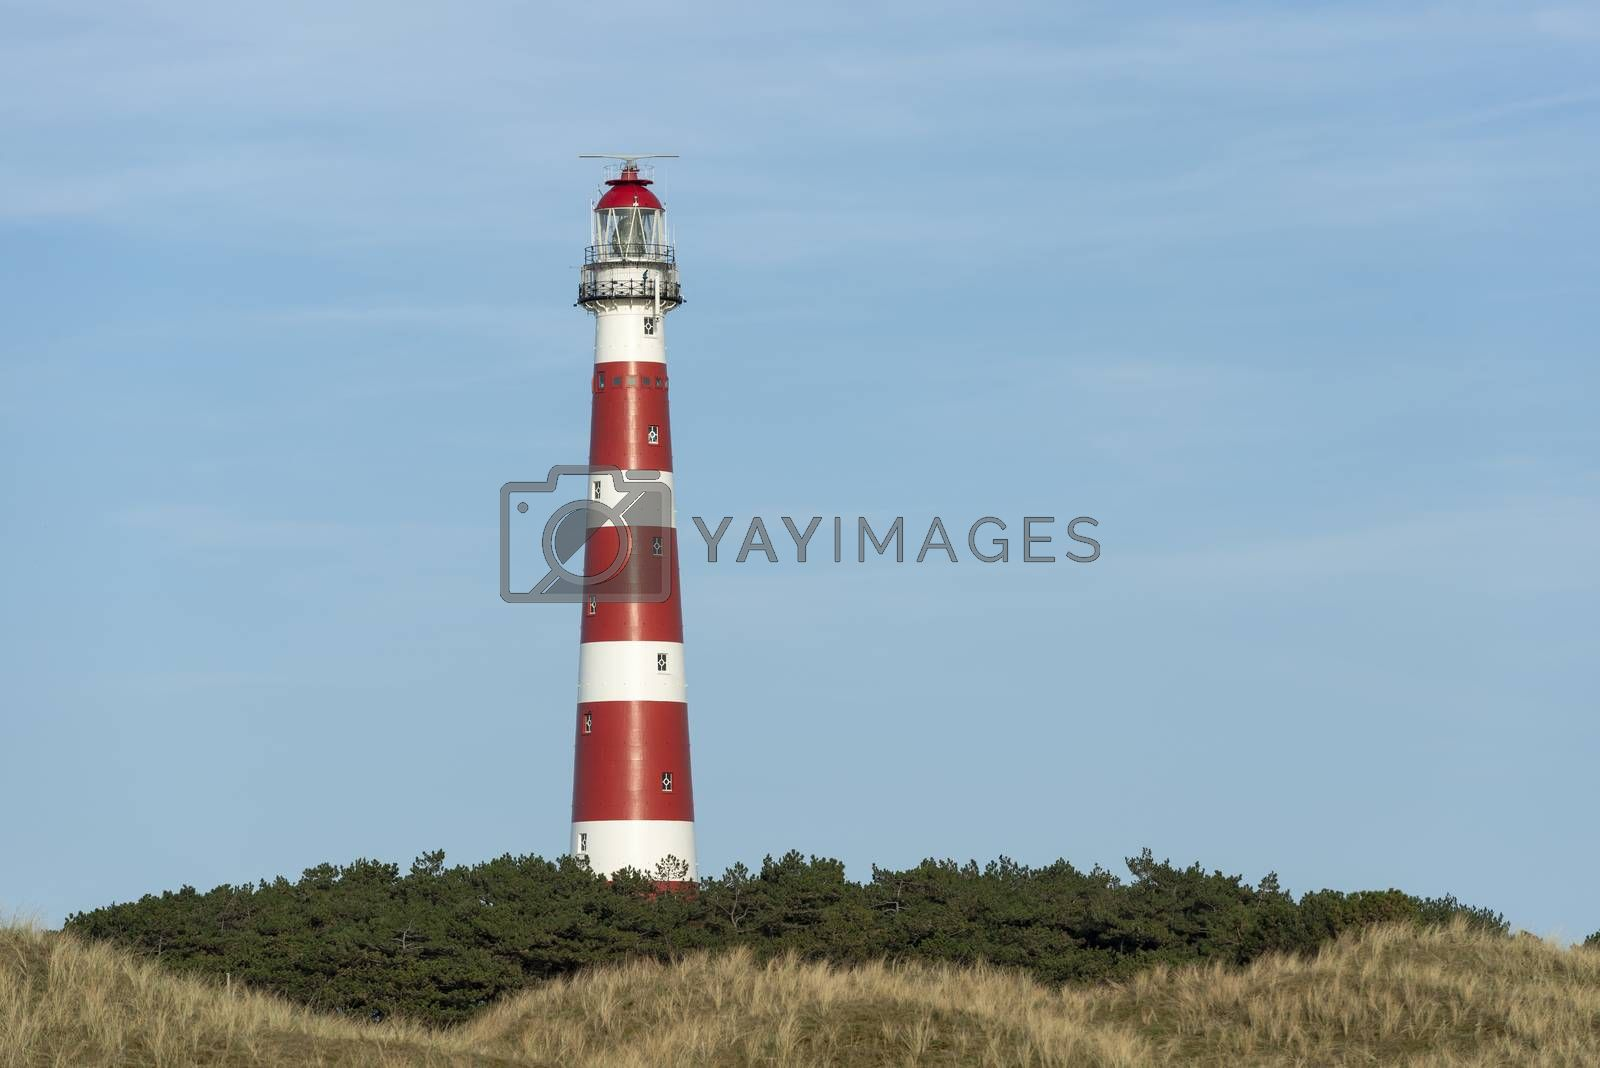 The red and white striped lighthouse of the Wadden island of Ameland in the north of the Netherlands